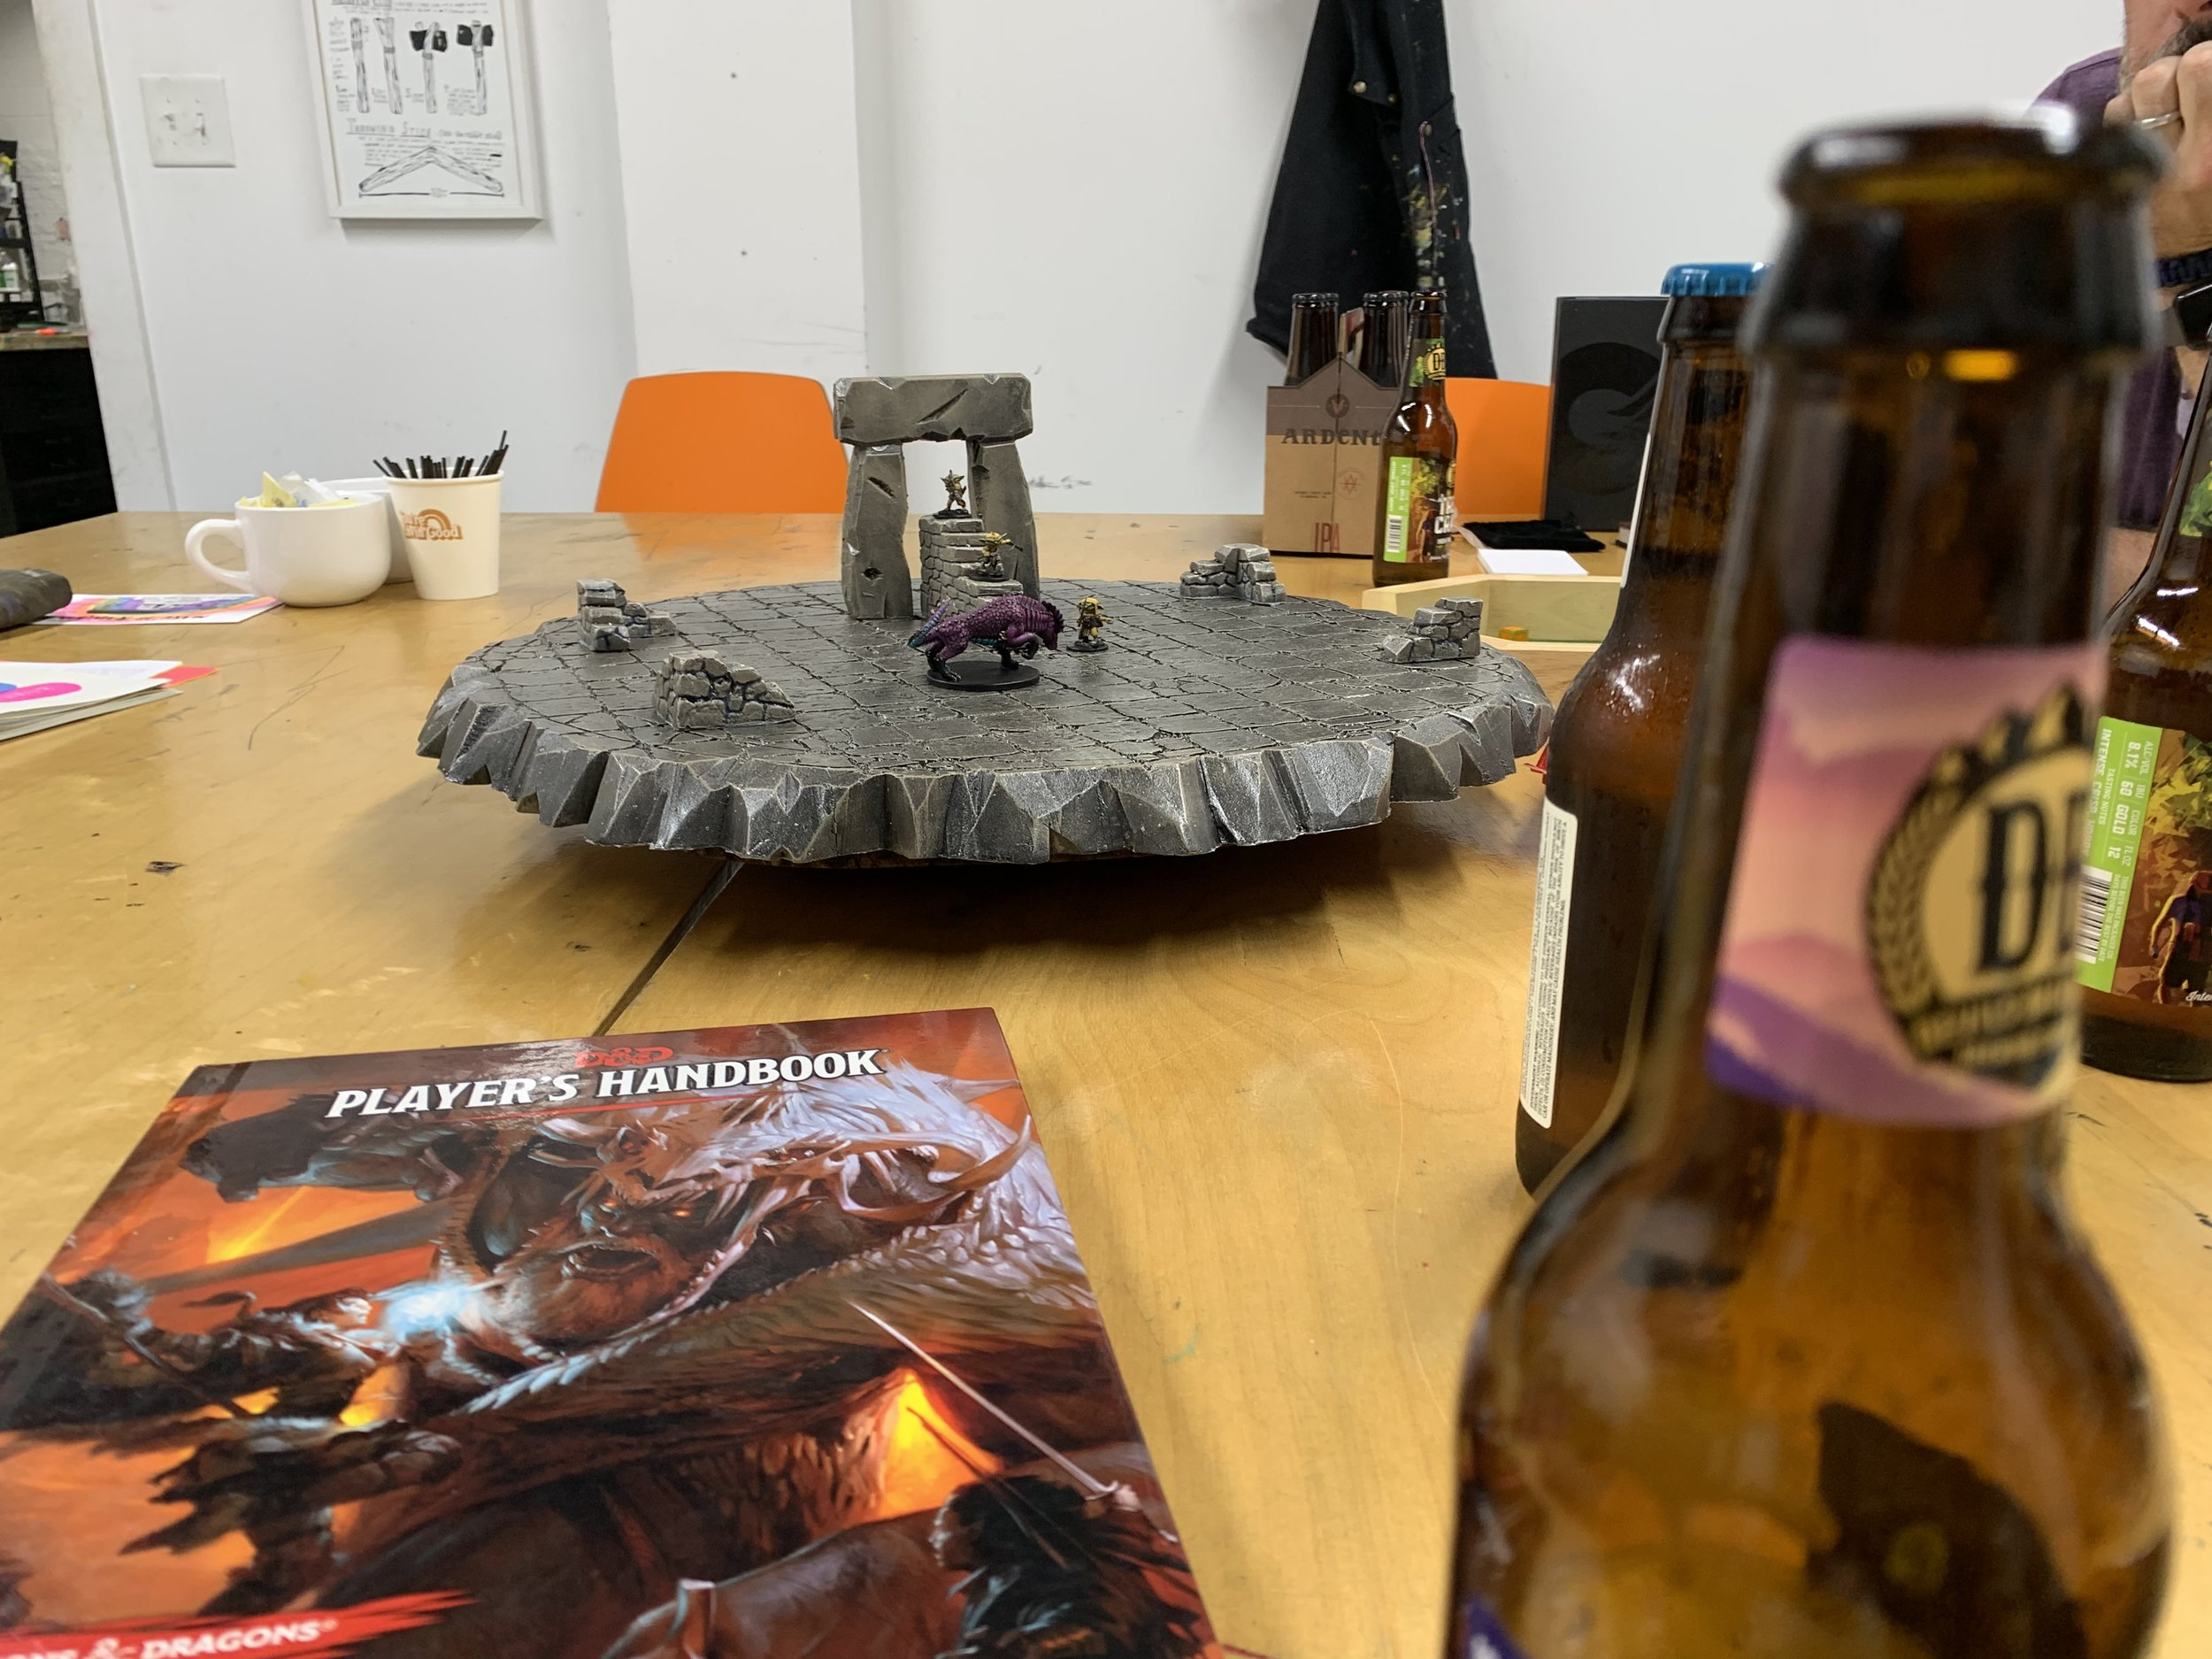 A picture of D&D miniatures and environment created by our friend Scott. There's a Player's Handbook and a beer bottle in the foreground.